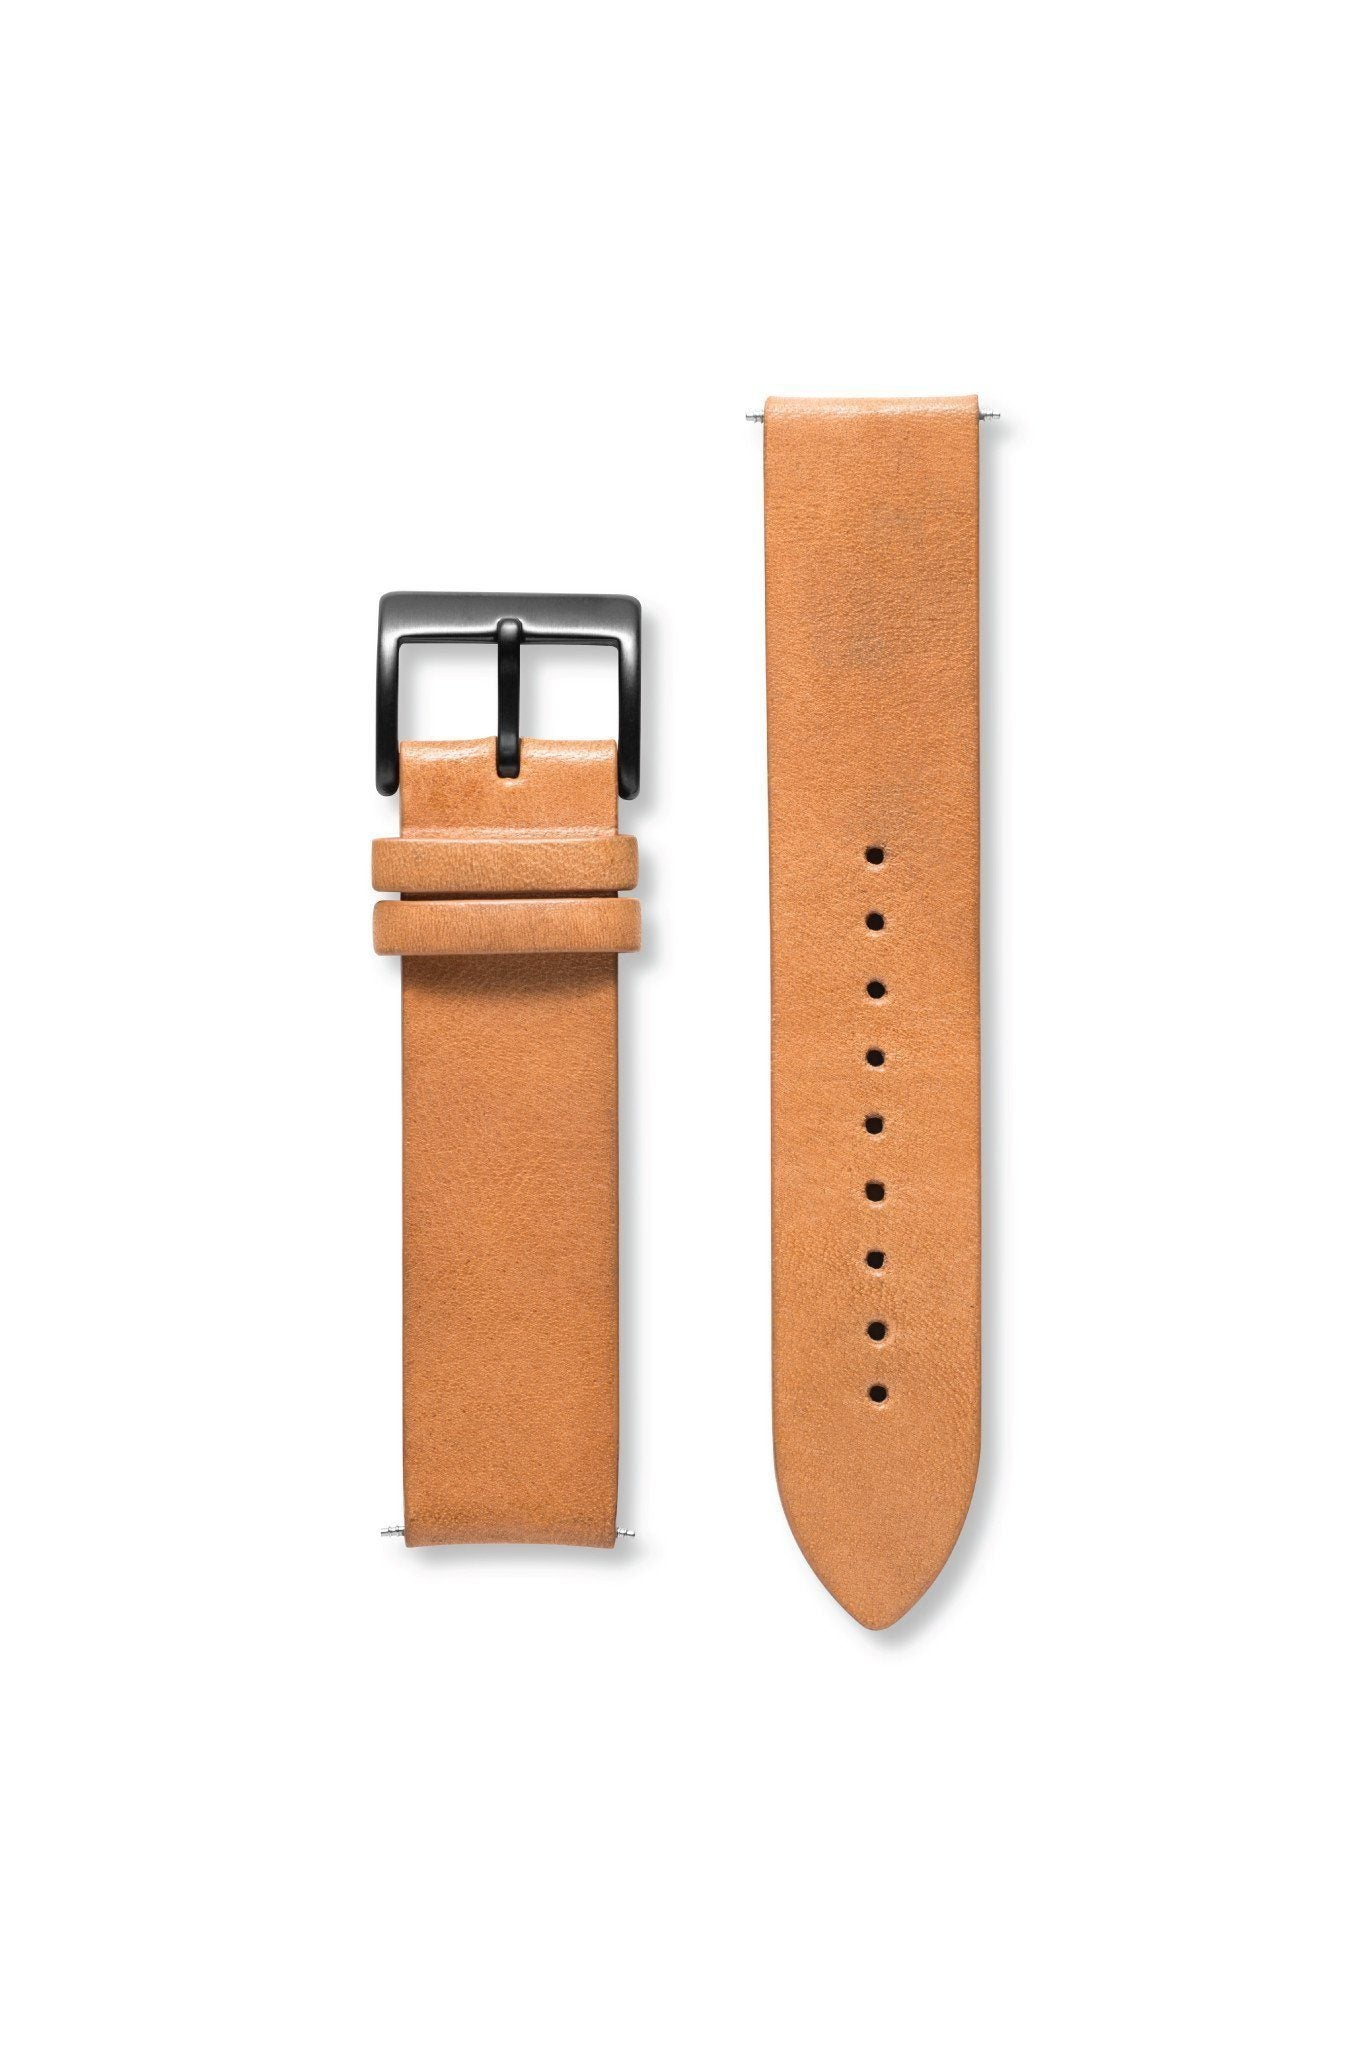 Strap - Leather Sand / Gunmetal Strap